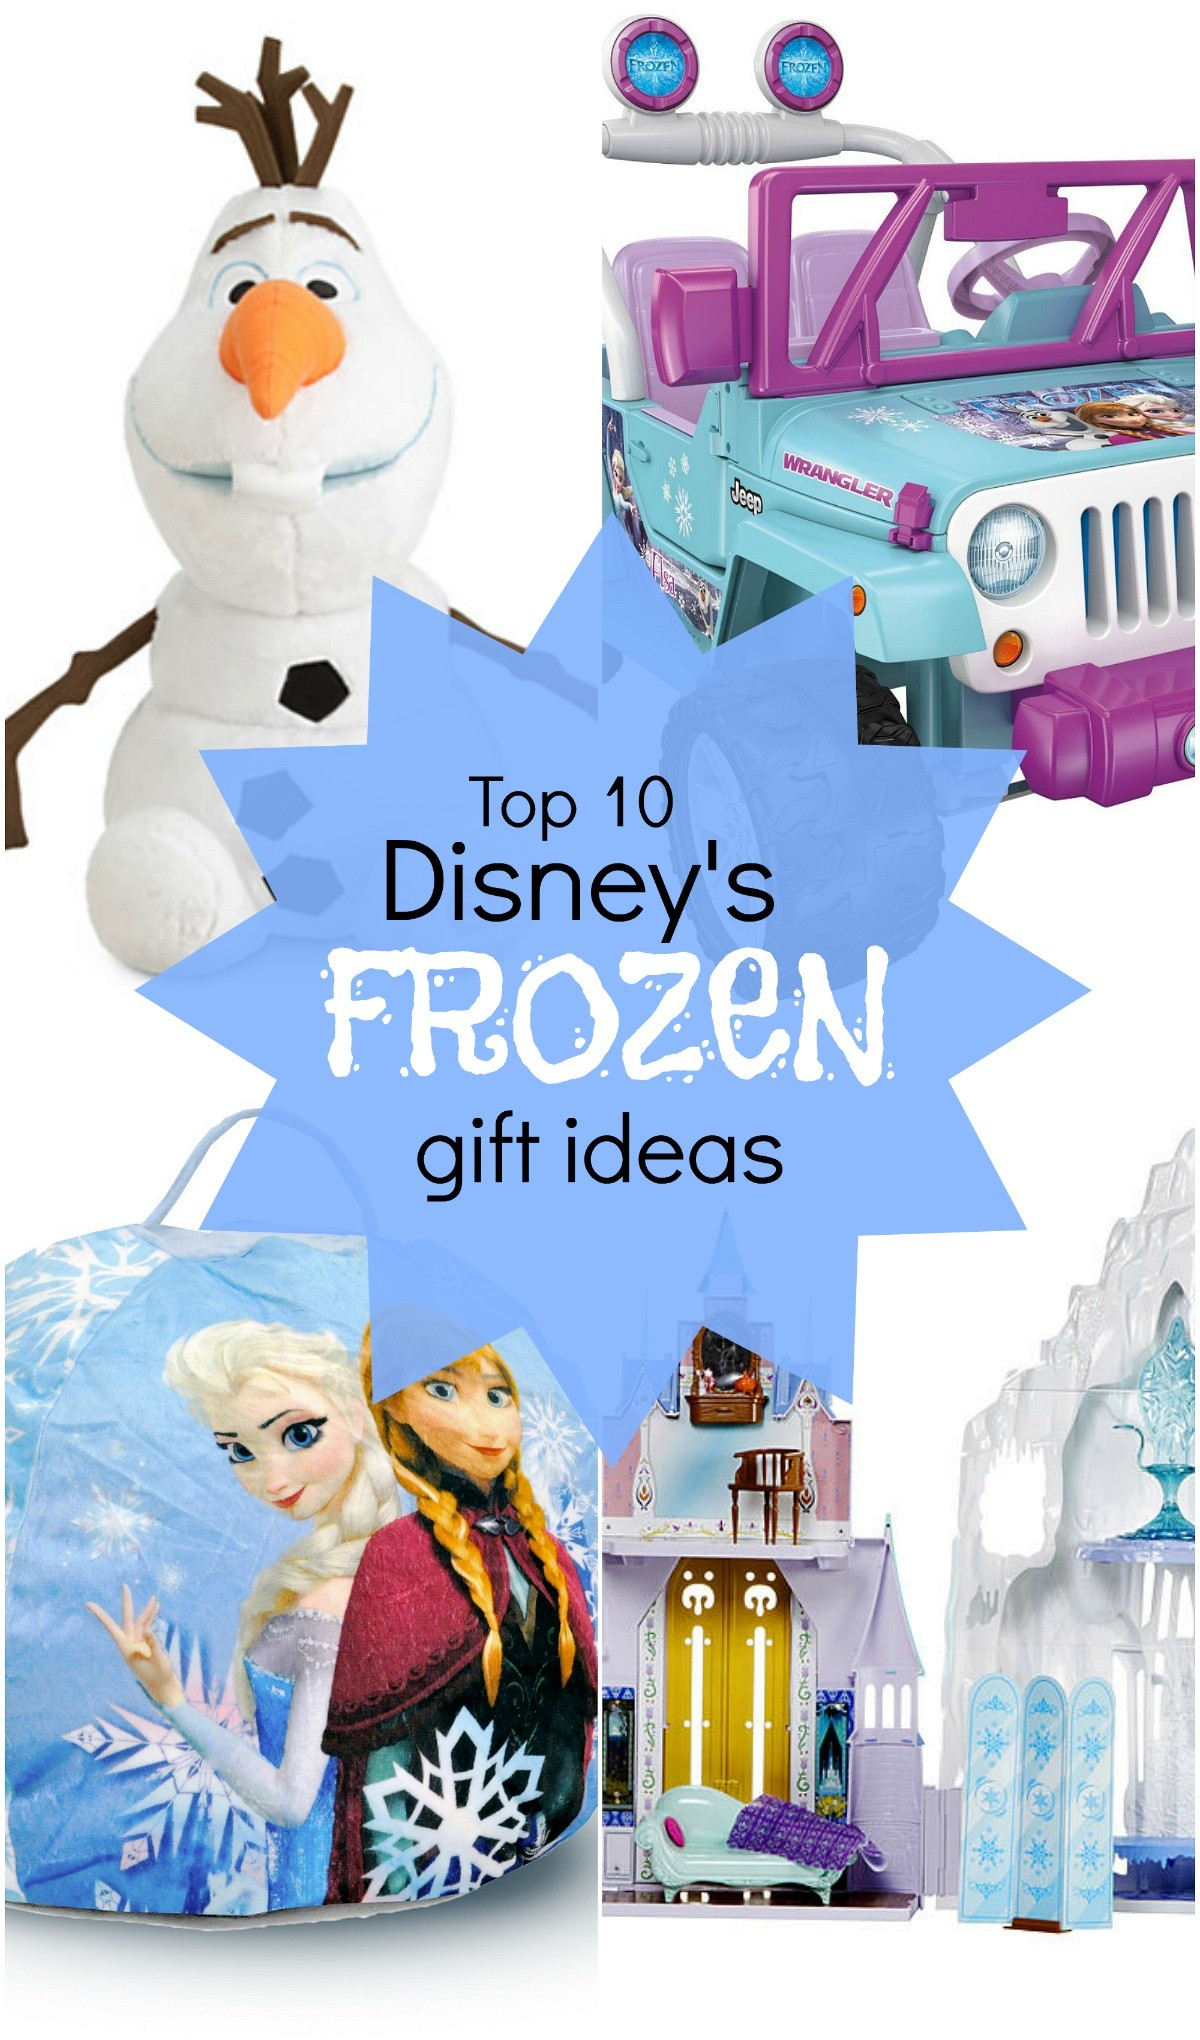 Top 10 Disney's FROZEN holiday gift ideas for kids who love the movie FROZEN